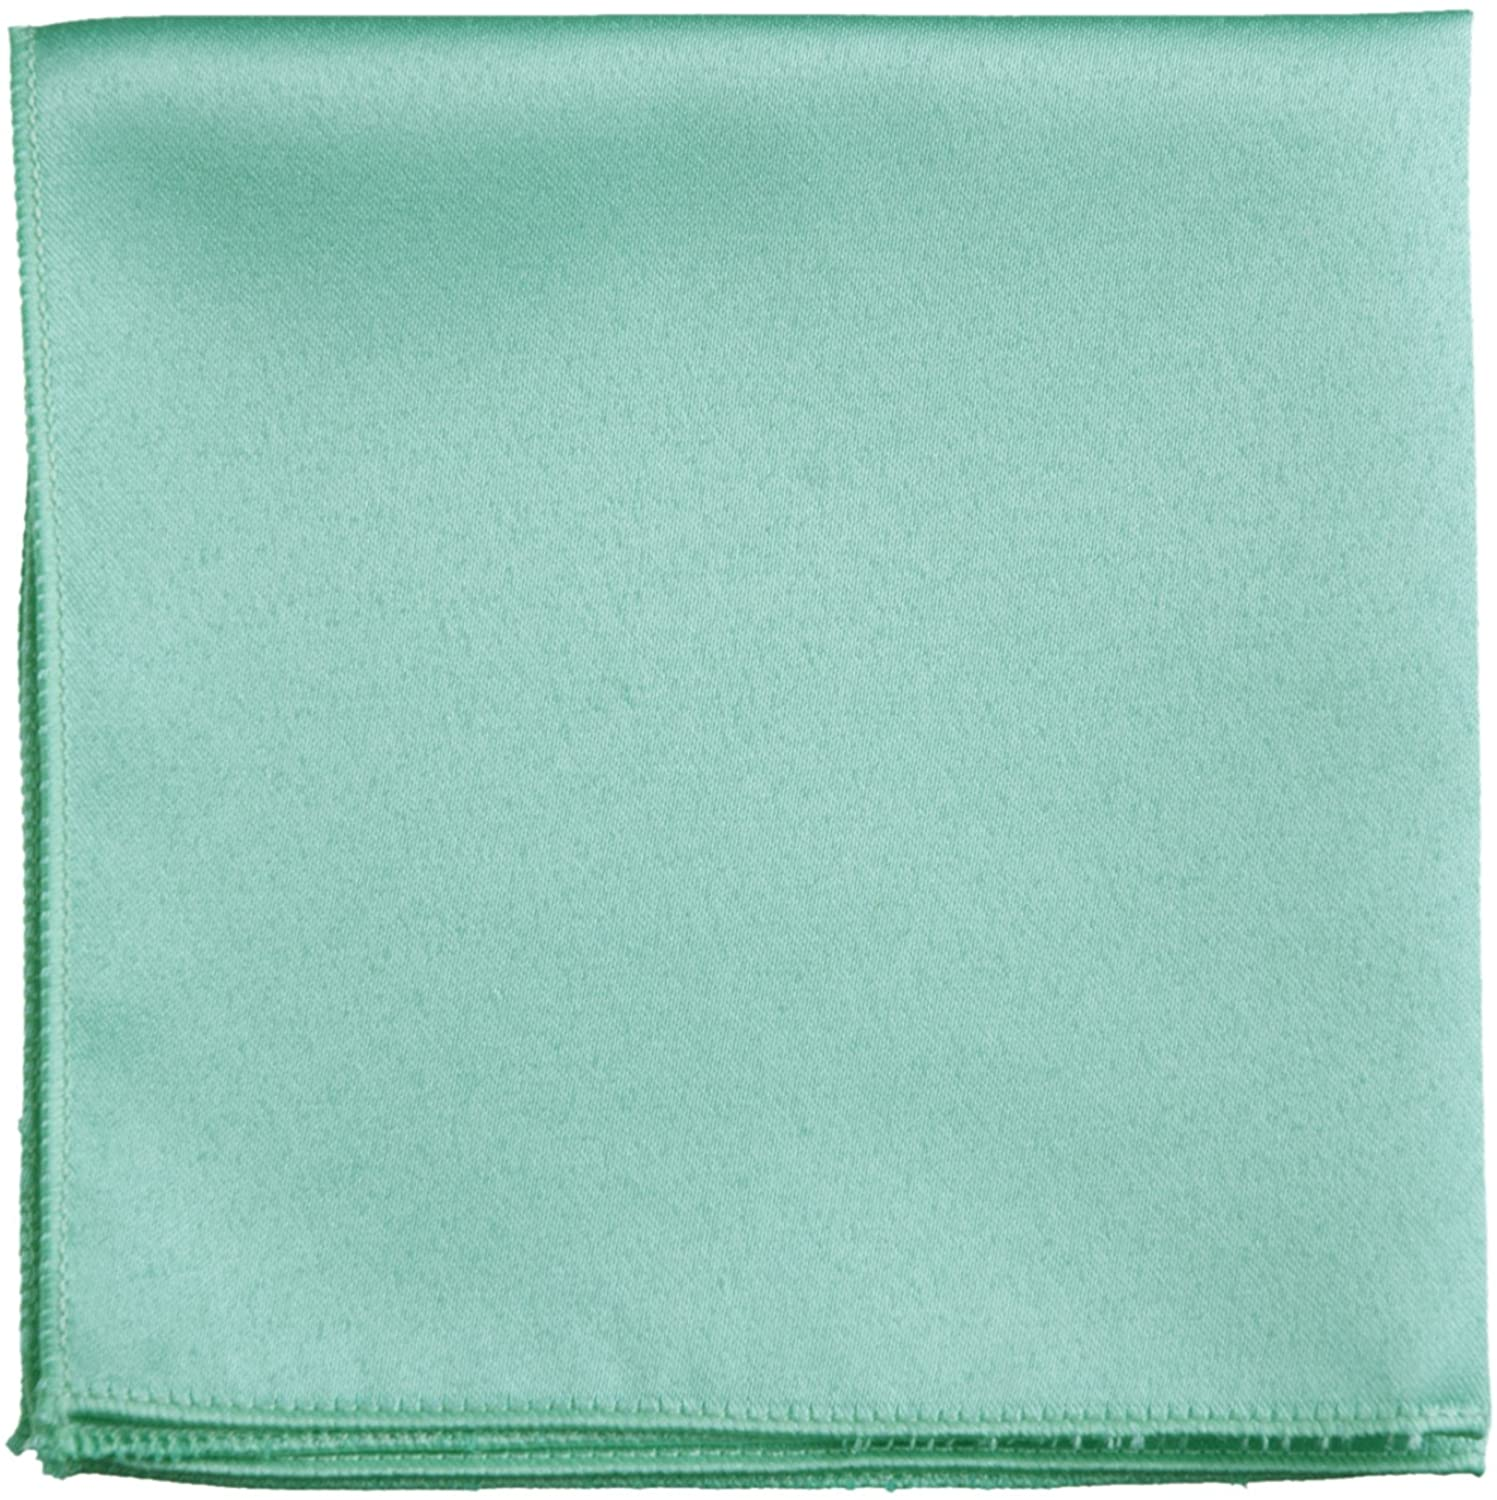 Tuxgear Mens Pocket Square Handkerchief in Solid Colors Sized for Boys and Men